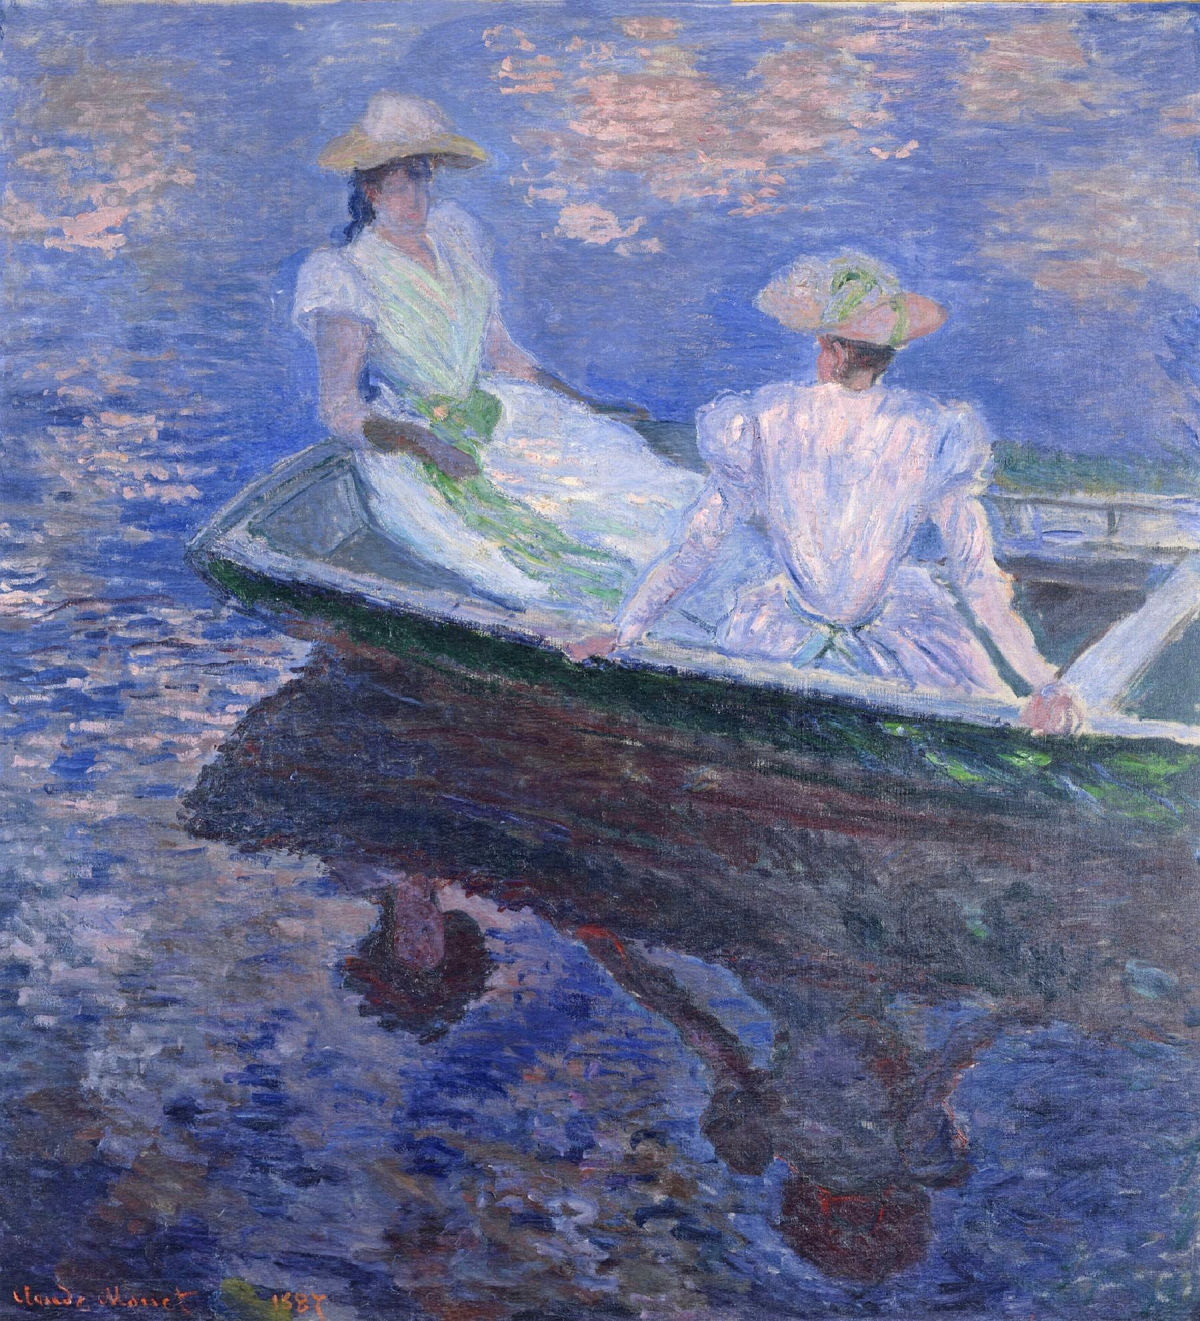 Young Girls in a Row Boat 1887